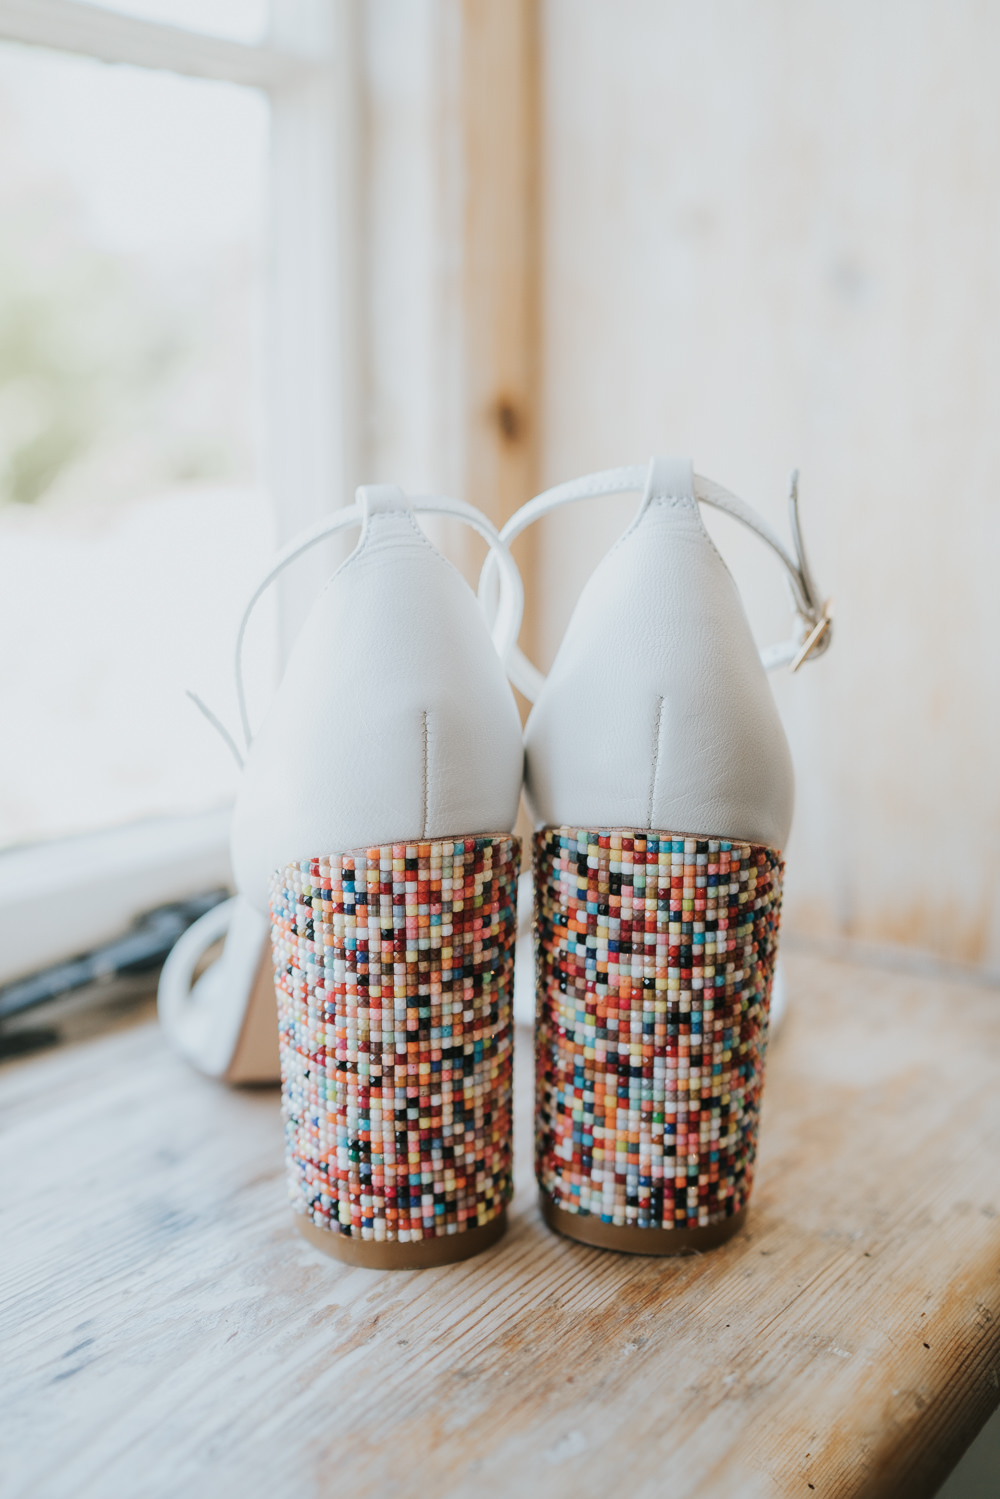 Outdoor Natural Relaxed Laid Back Summer White Dress Bridal Colorful Shoes Morning Bride Prep | Prested Hall Wedding Grace Elizabeth Photography